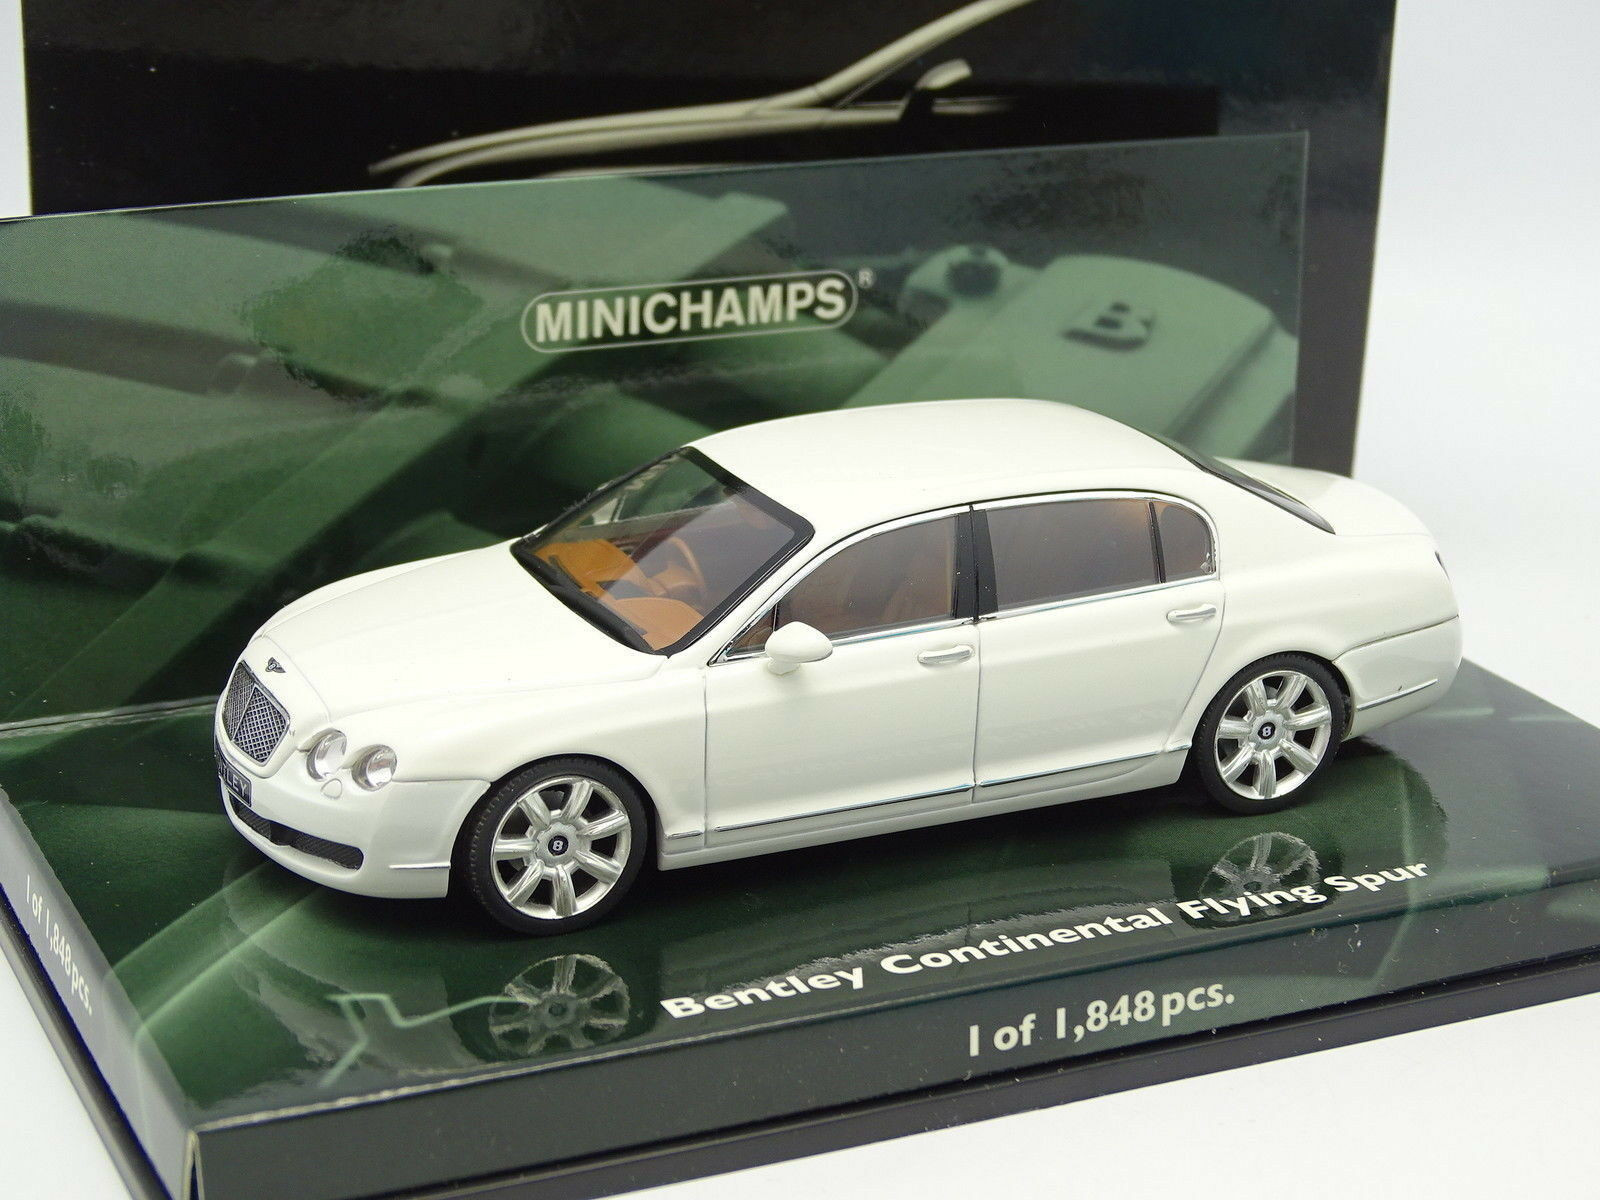 Minichamps 1 43 - Bentley Continental Flying Spur Blanche